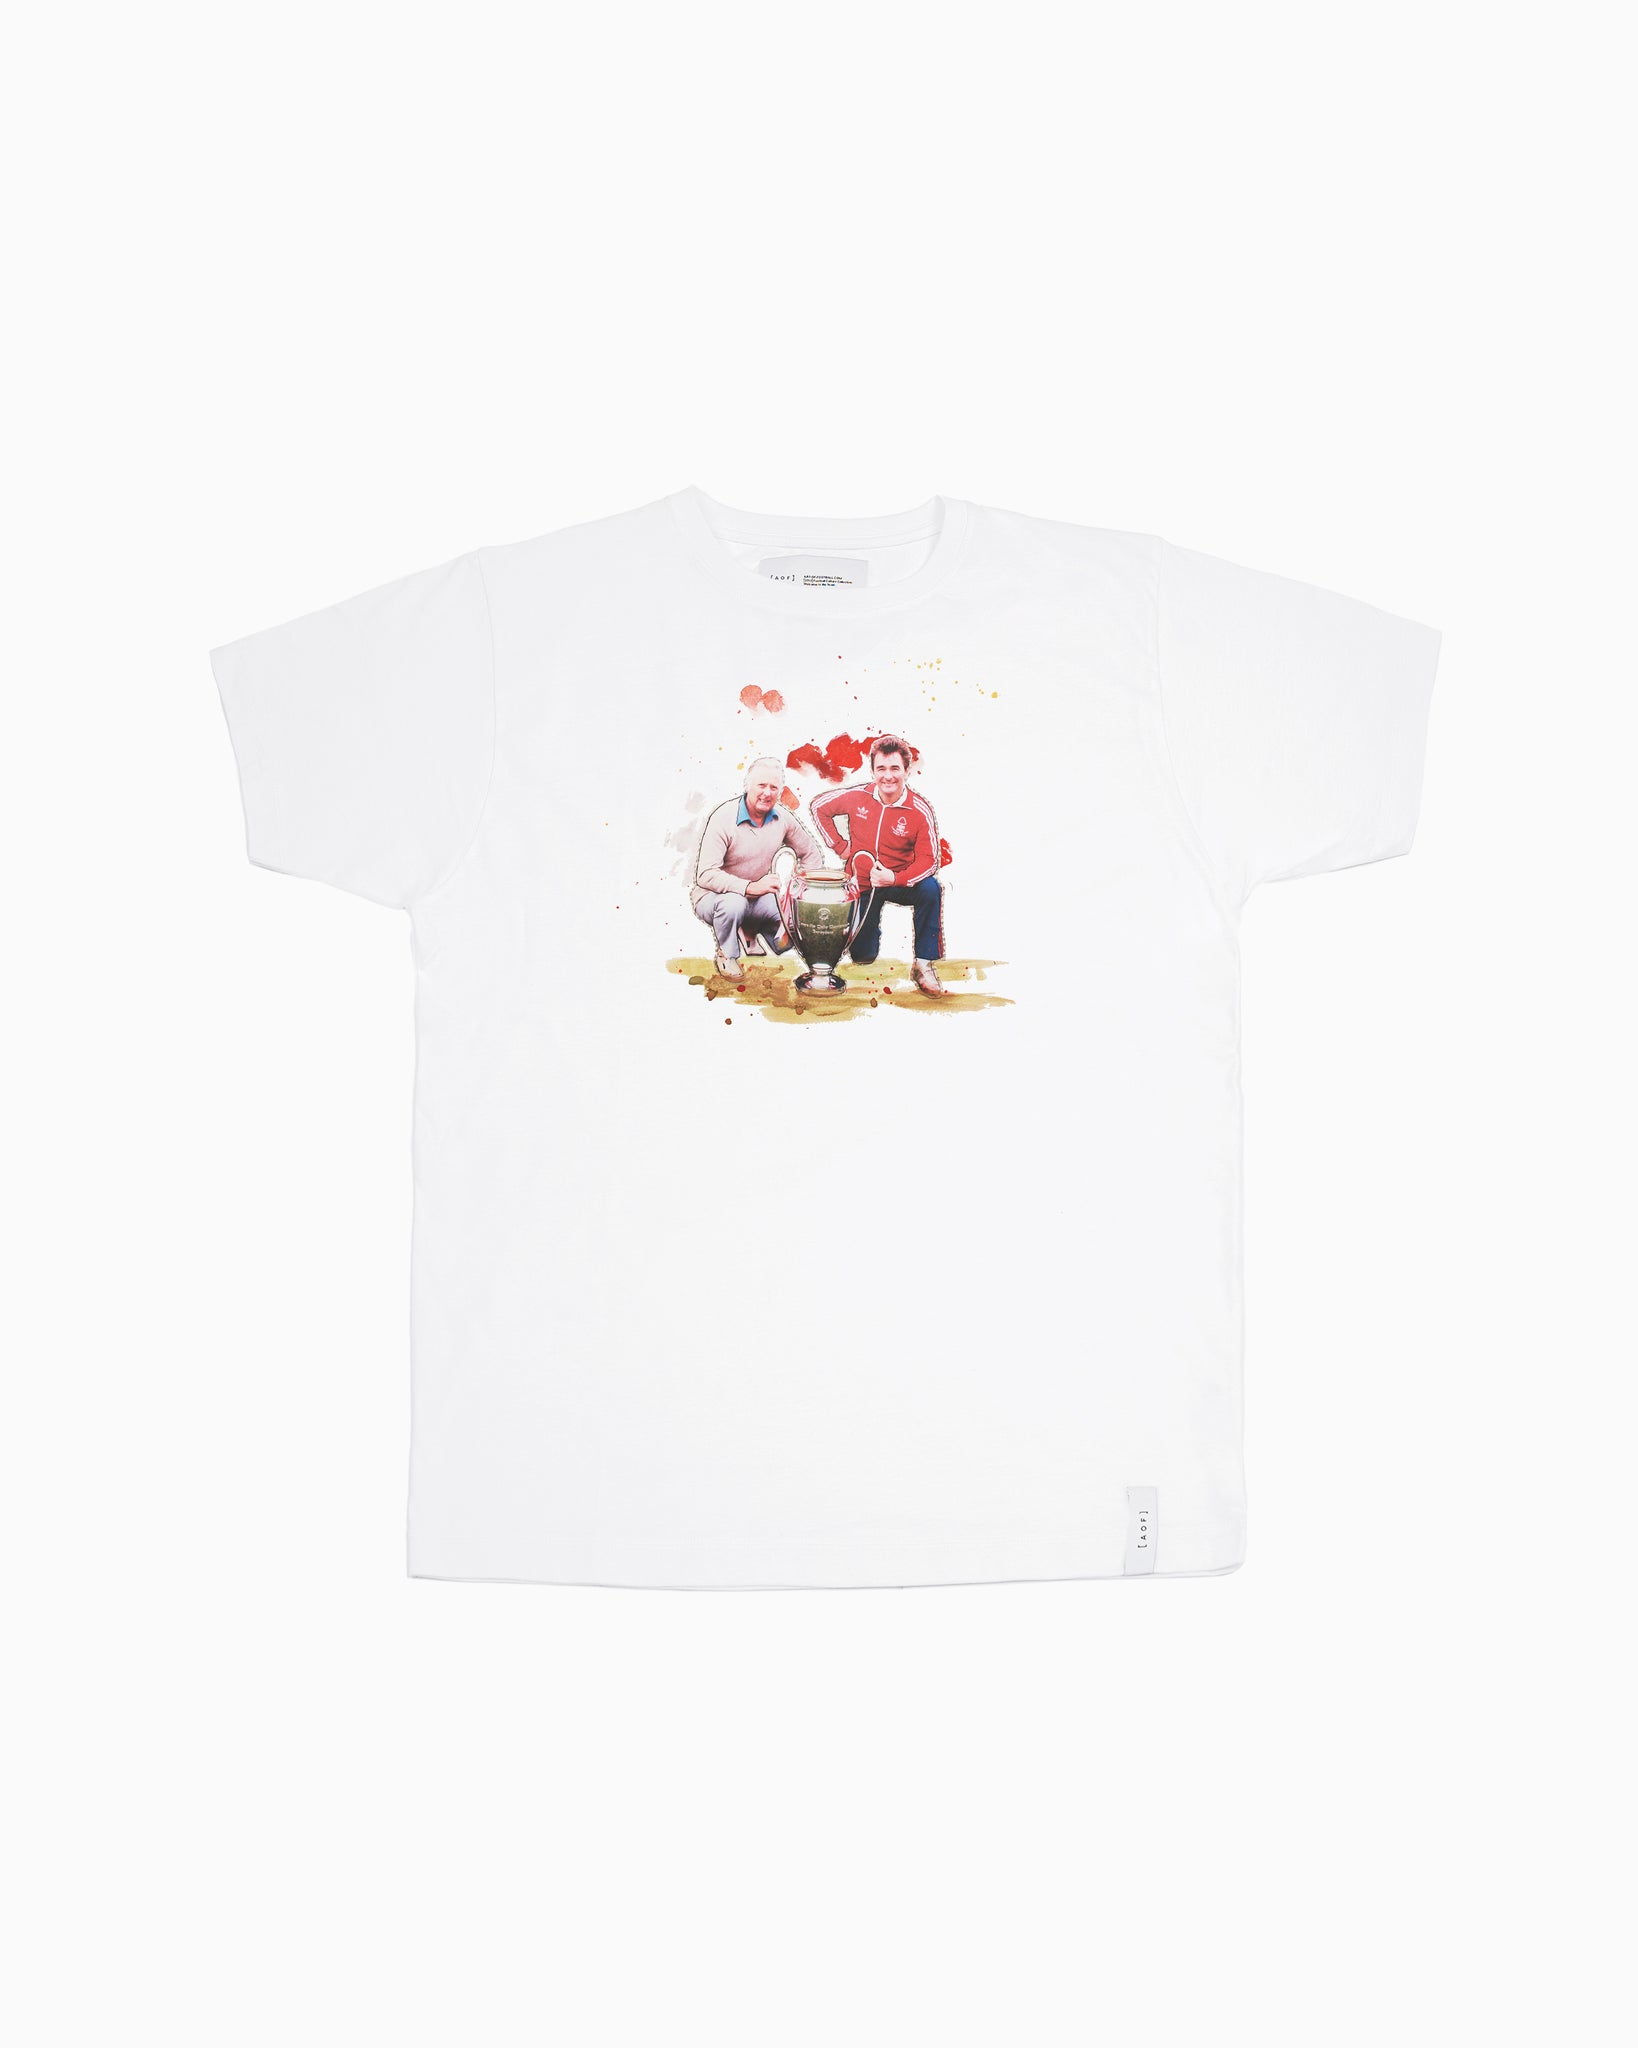 Golden Years - Tee or Sweat